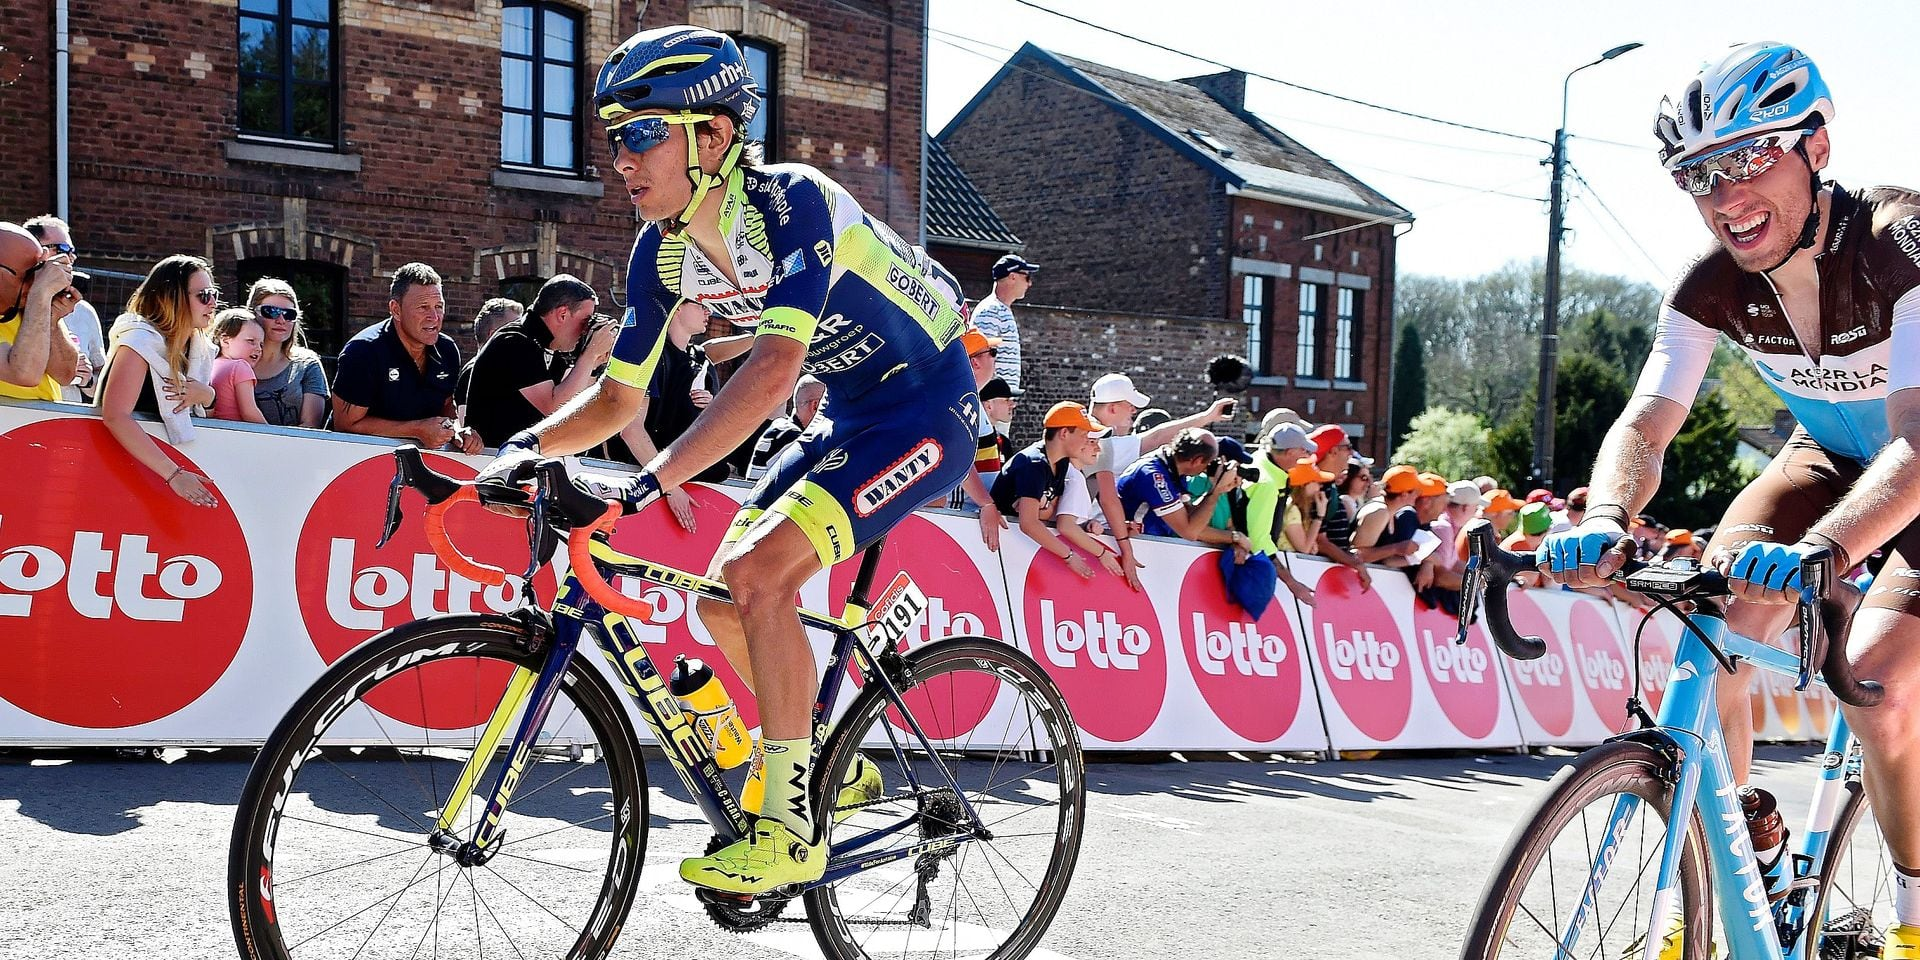 HUY, BELGIUM - APRIL 18 : MARTIN Guillaume of Wanty - Groupe Gobert during the 82th edition of the UCI World Tour Ardennes Classics cycling race Fleche Wallonne with start in Seraing and finish in Huy on April 18, 2018 in Huy, Belgium, 18/04/2018 ( Motordriver Kenny Verfaillie - Photo by Vincent Kalut / Photonews